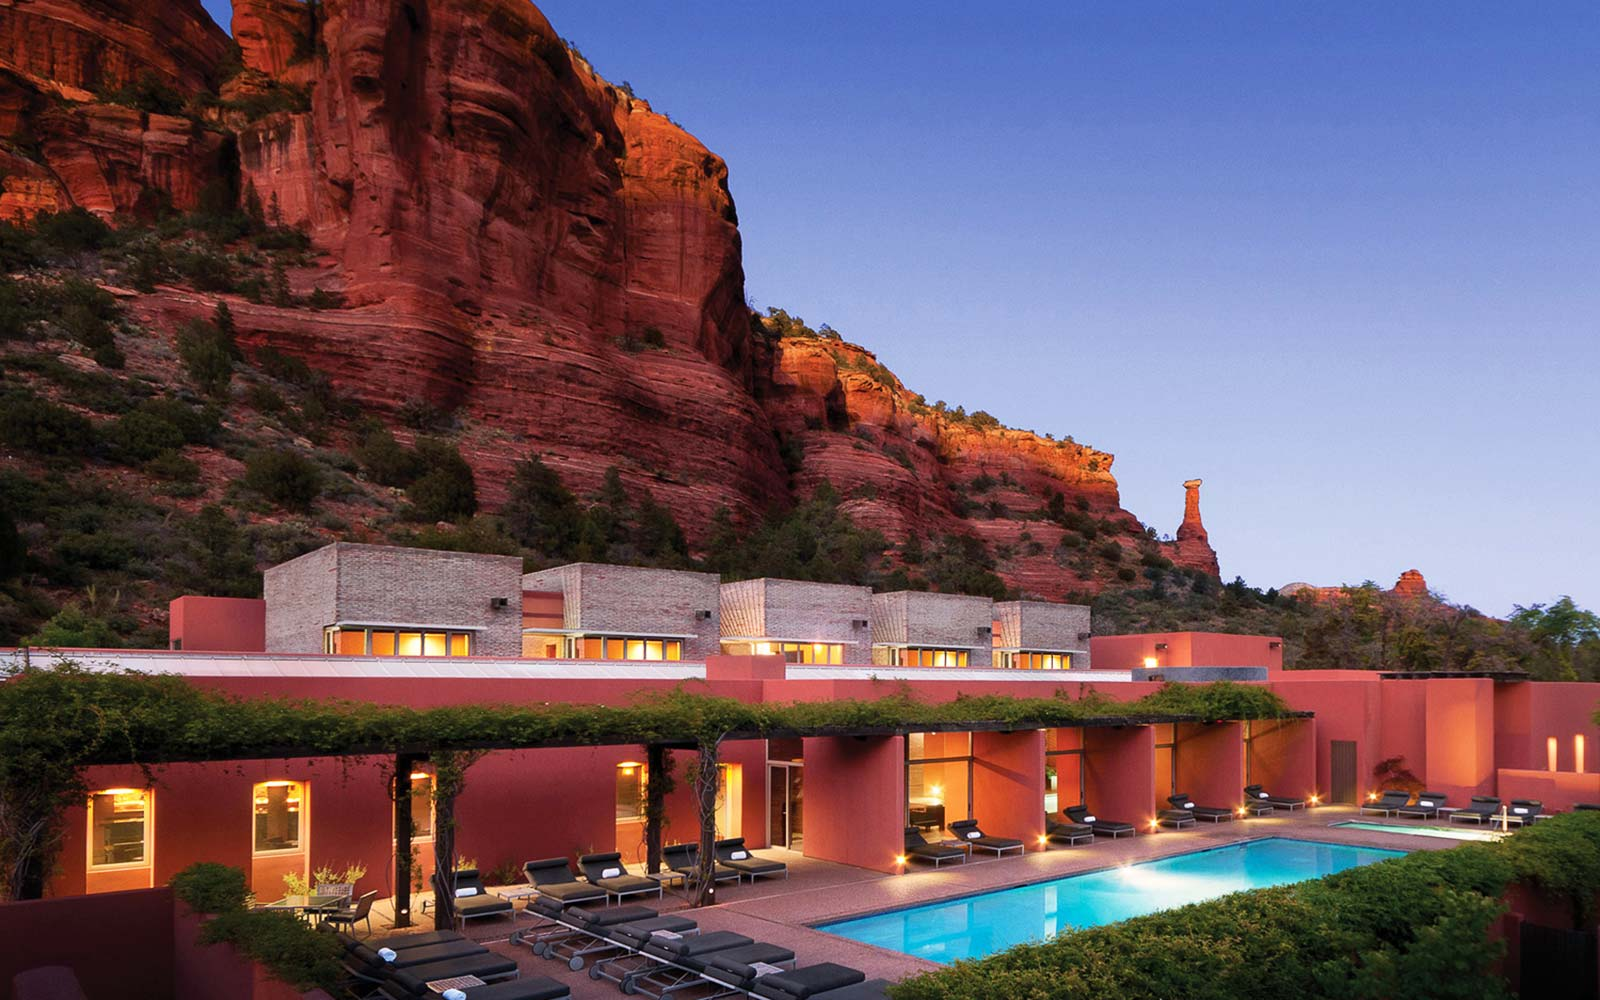 8. Mii Amo Spa, Sedona, Arizona